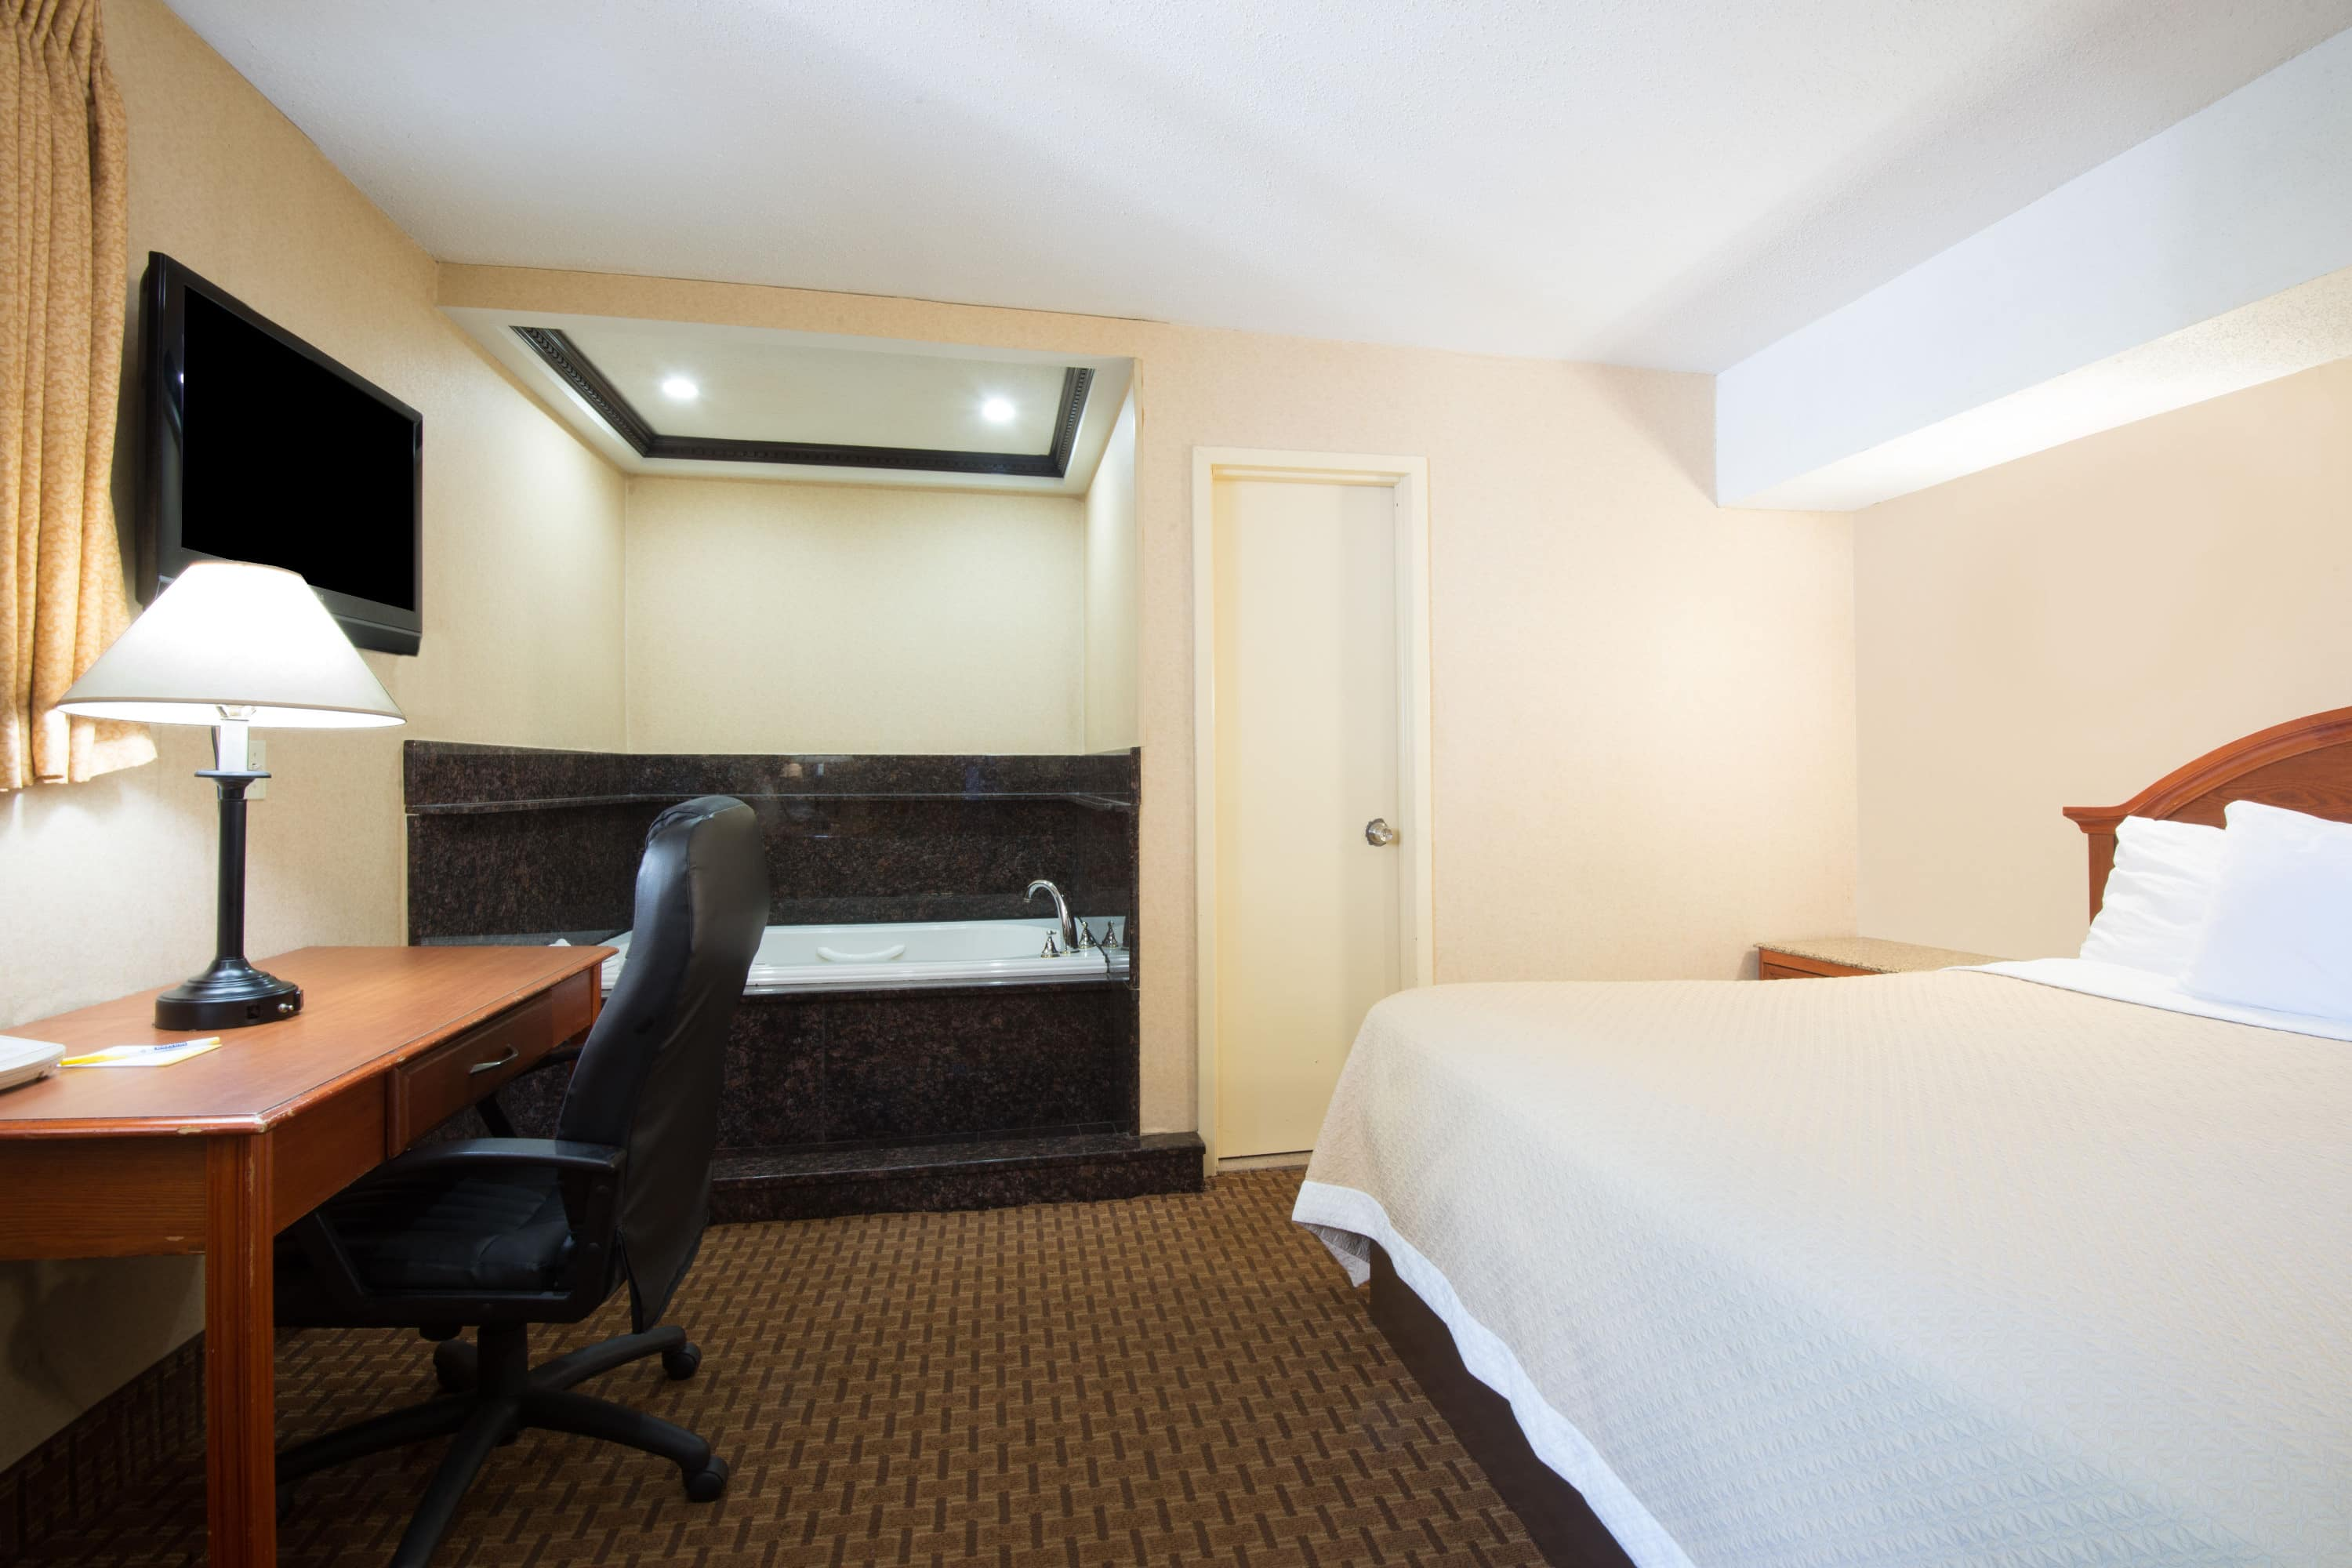 Days Inn Long Island/Copiague suite in Copiague, New York